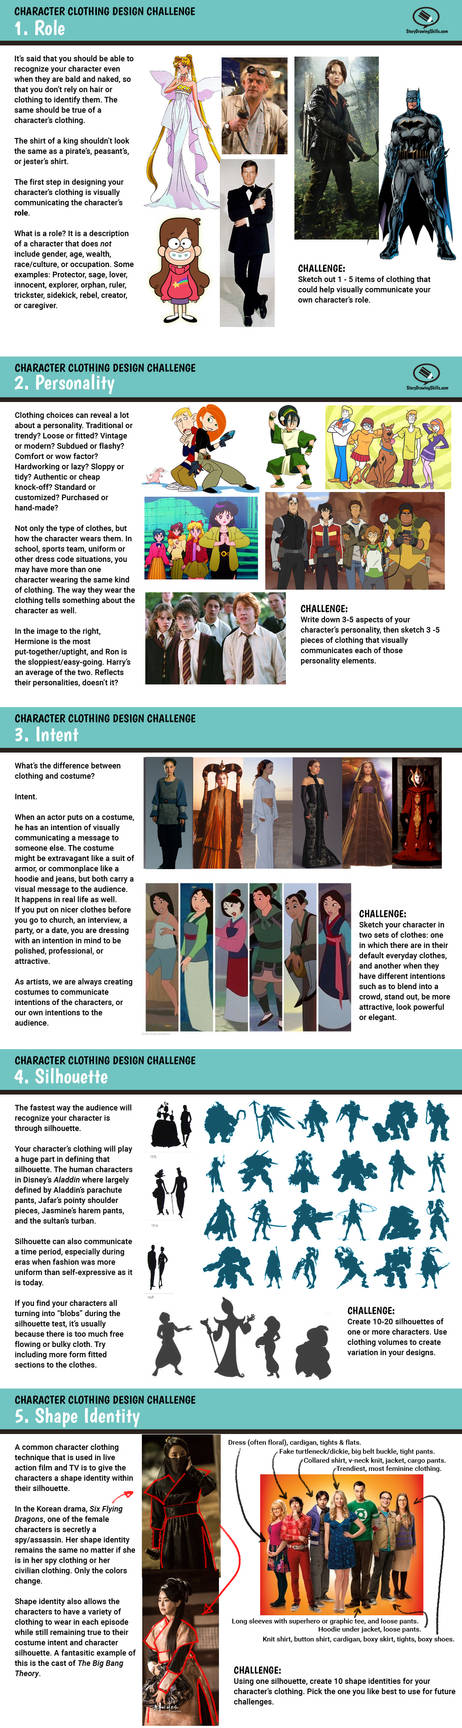 Character Clothing Challenge Prompts 1-5